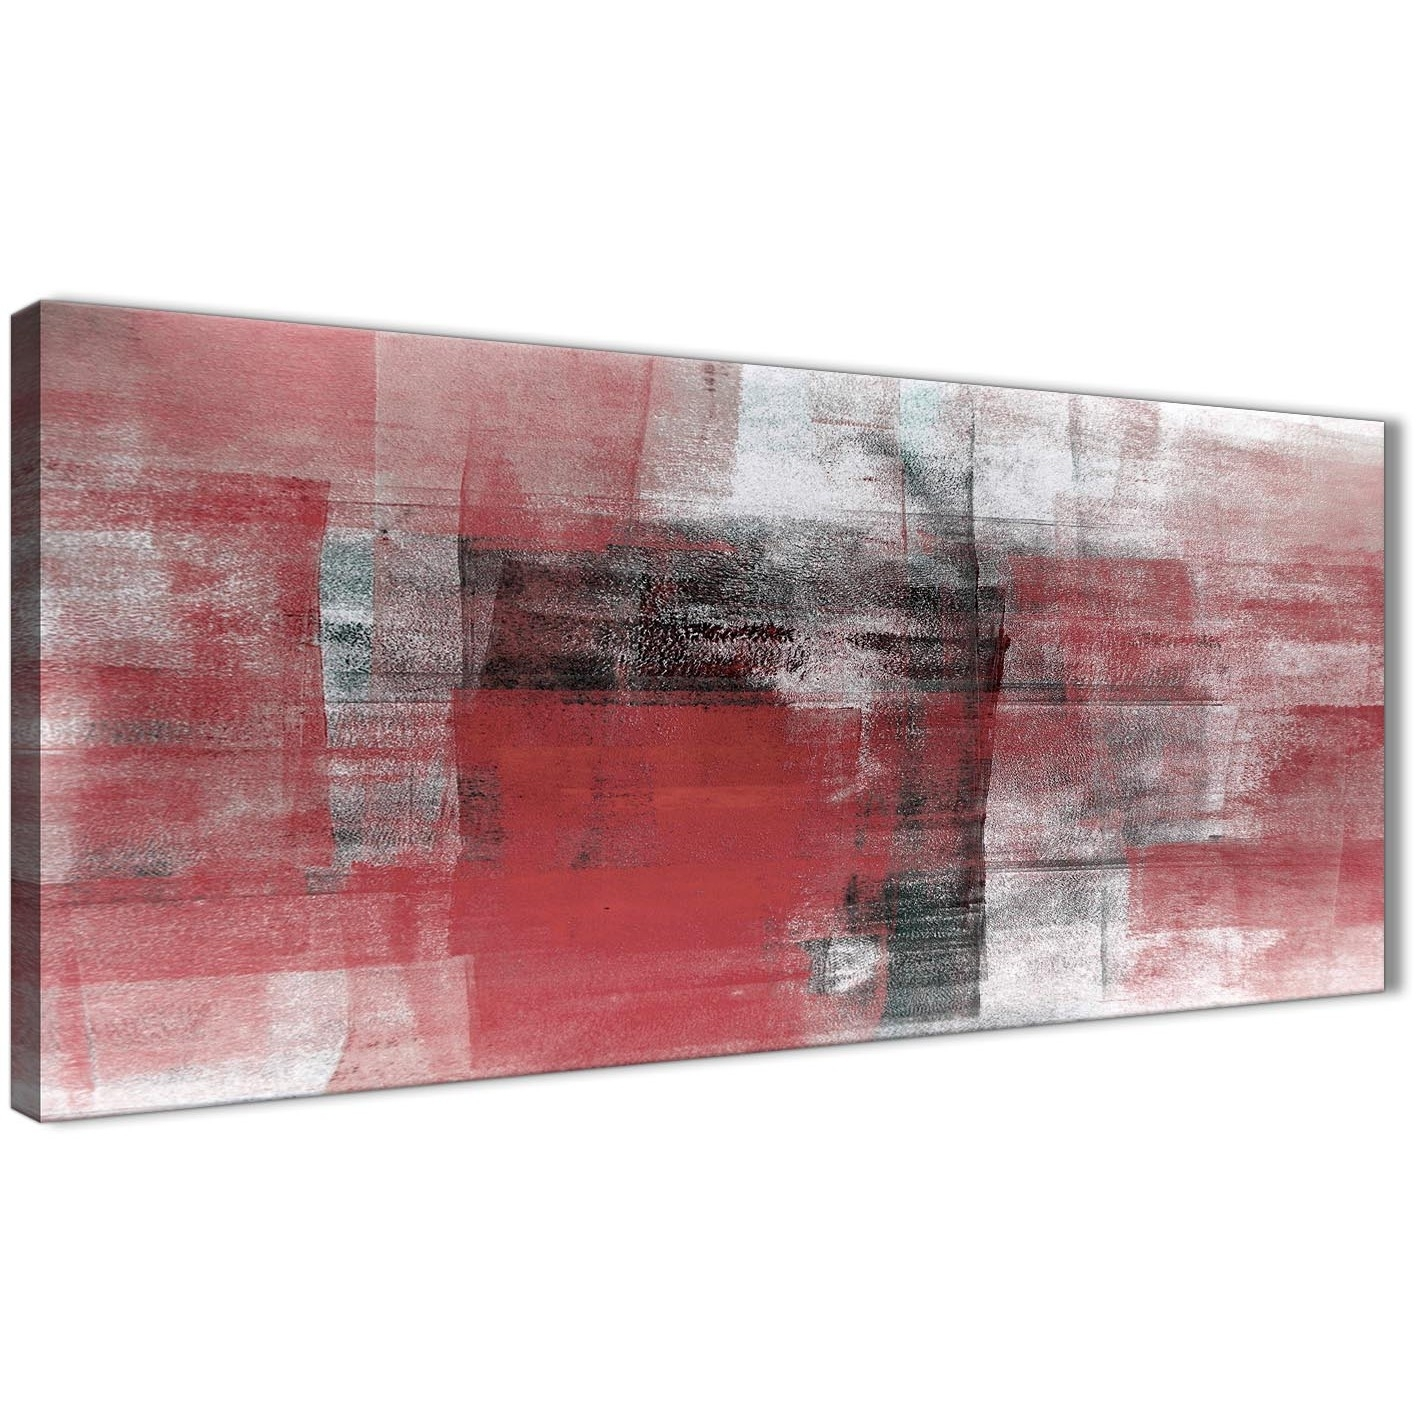 Red Black White Painting Living Room Canvas Wall Art Accessories Intended For Red And Black Canvas Wall Art (View 7 of 20)